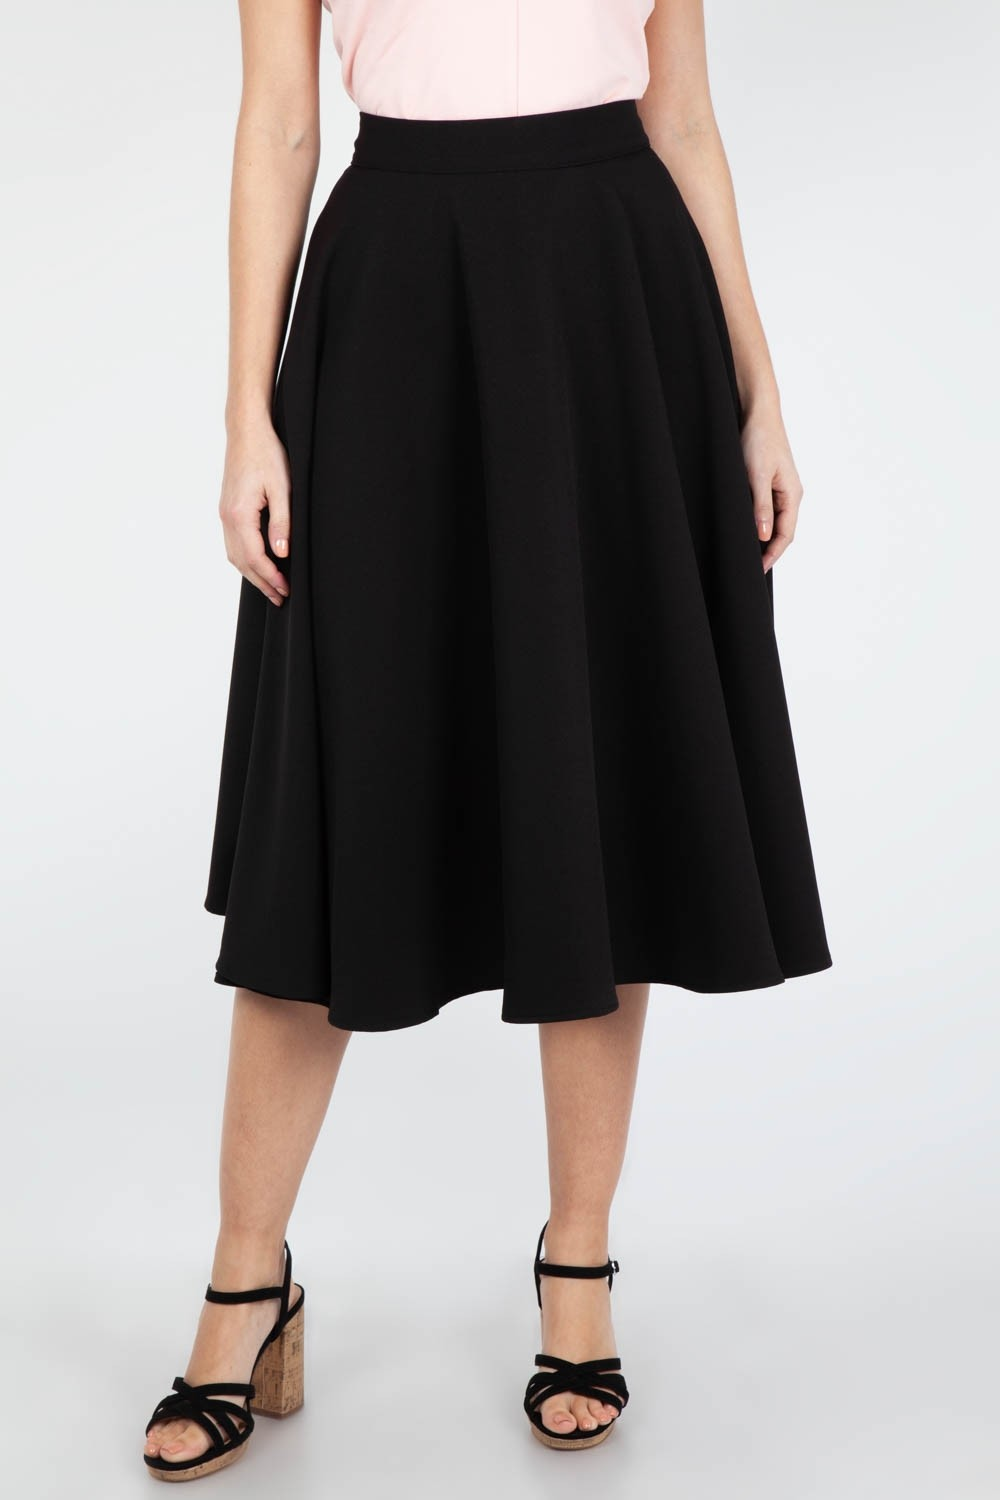 Voodoo Vixen Black Sandy Skirt